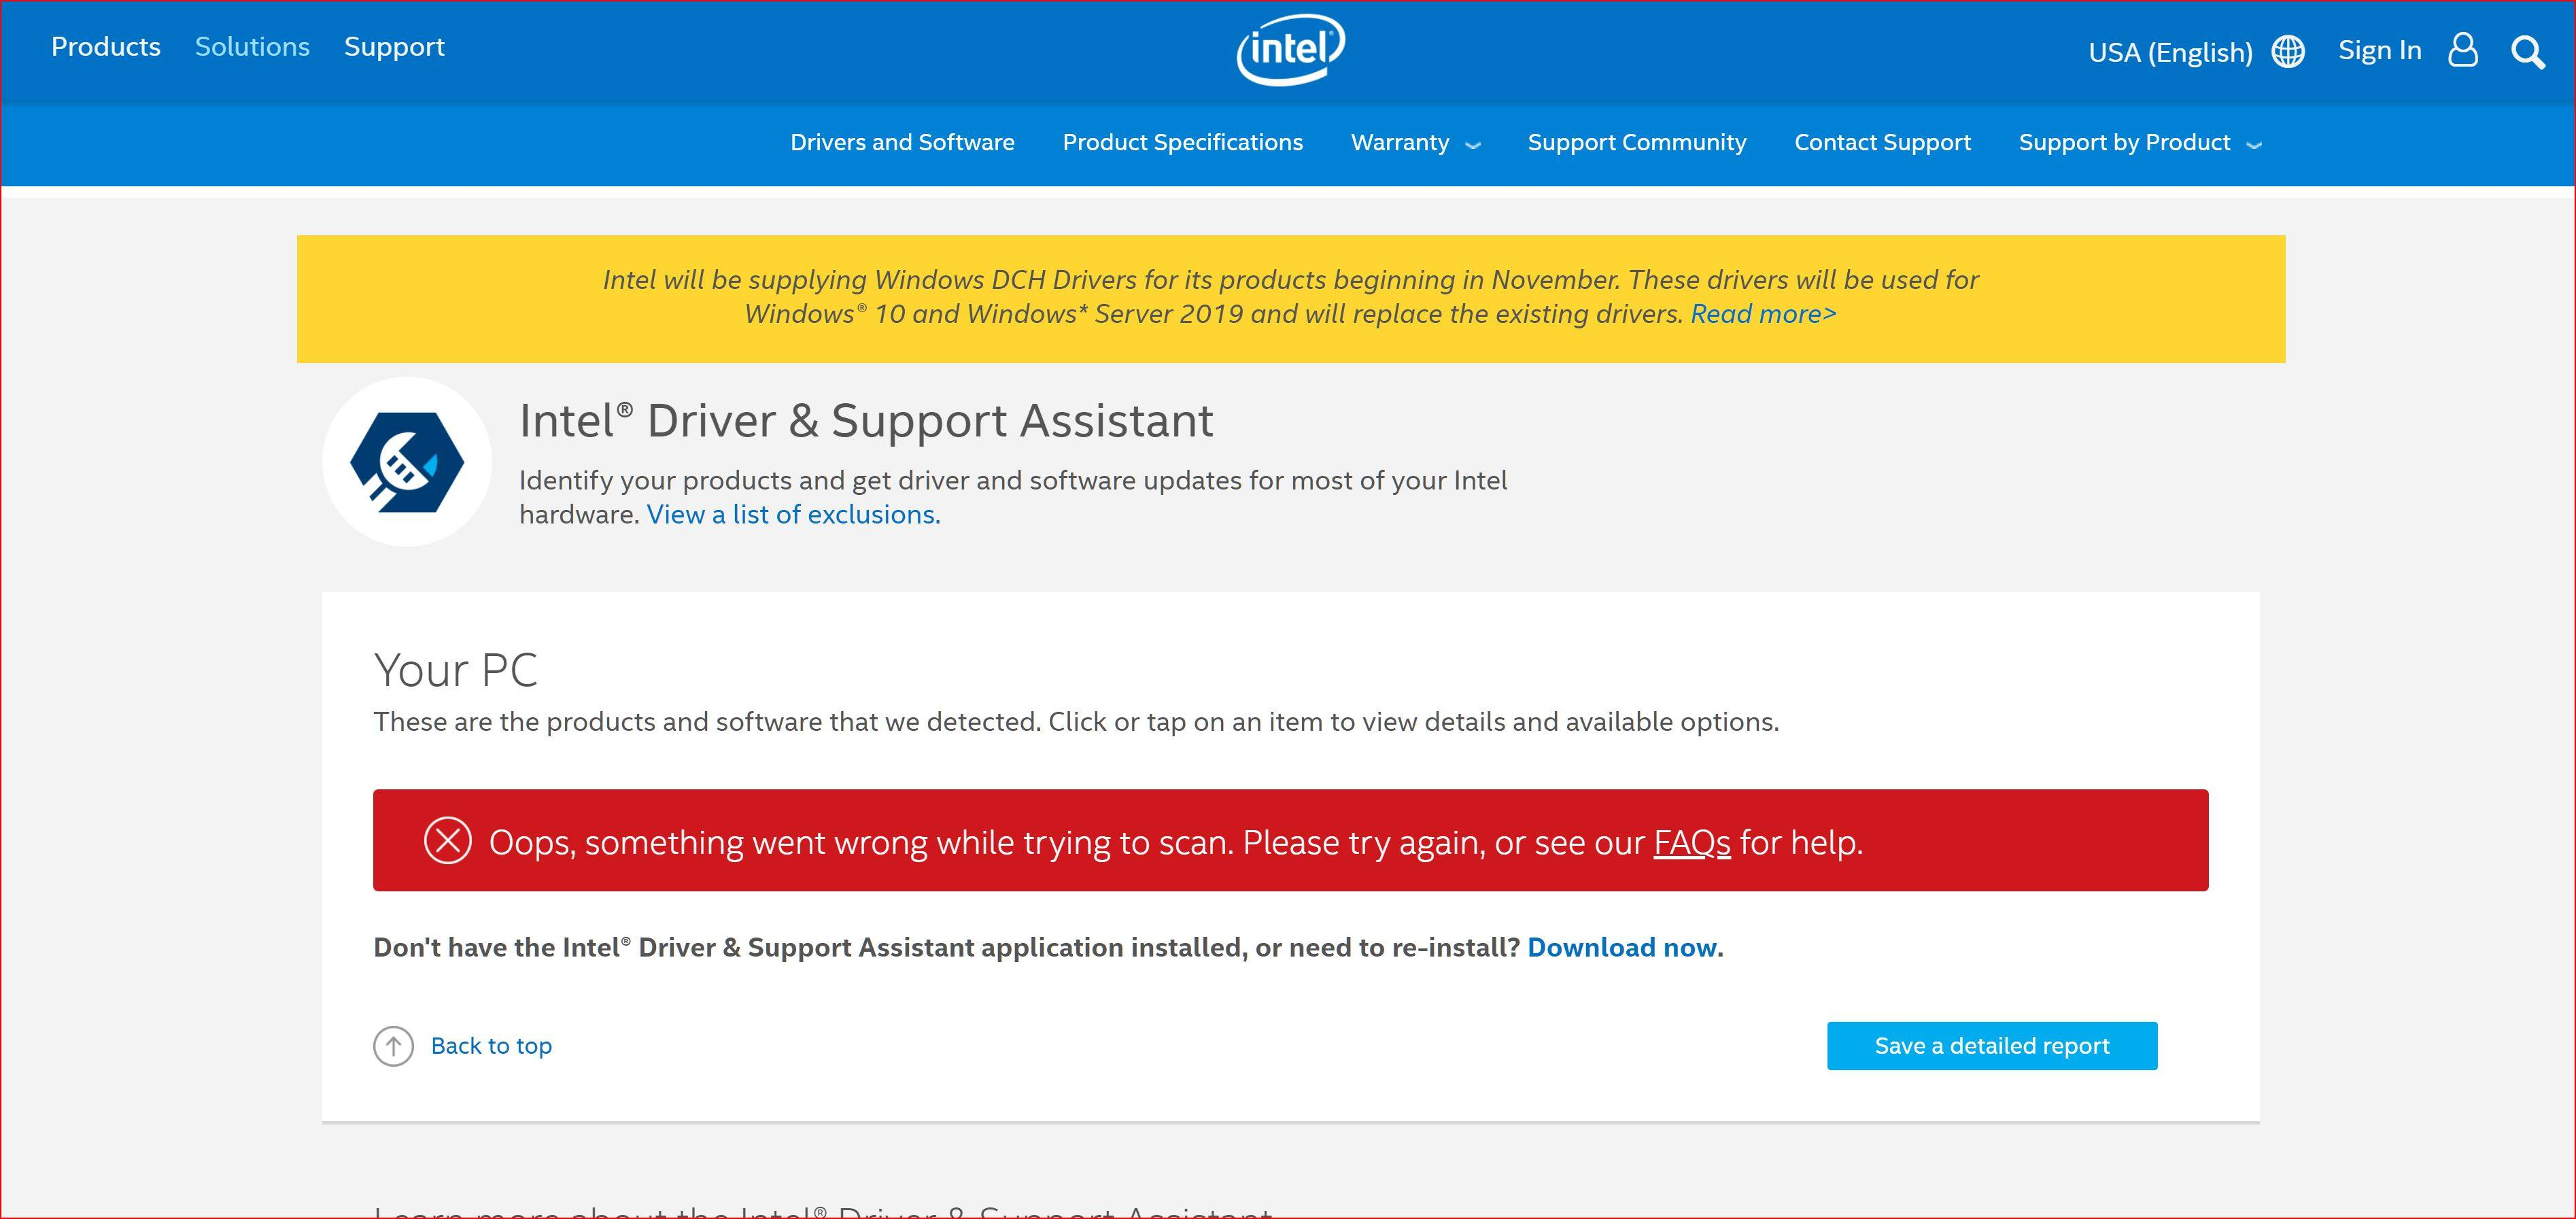 Intel® Driver & Support Assistant / Windows 10 DCH Drivers